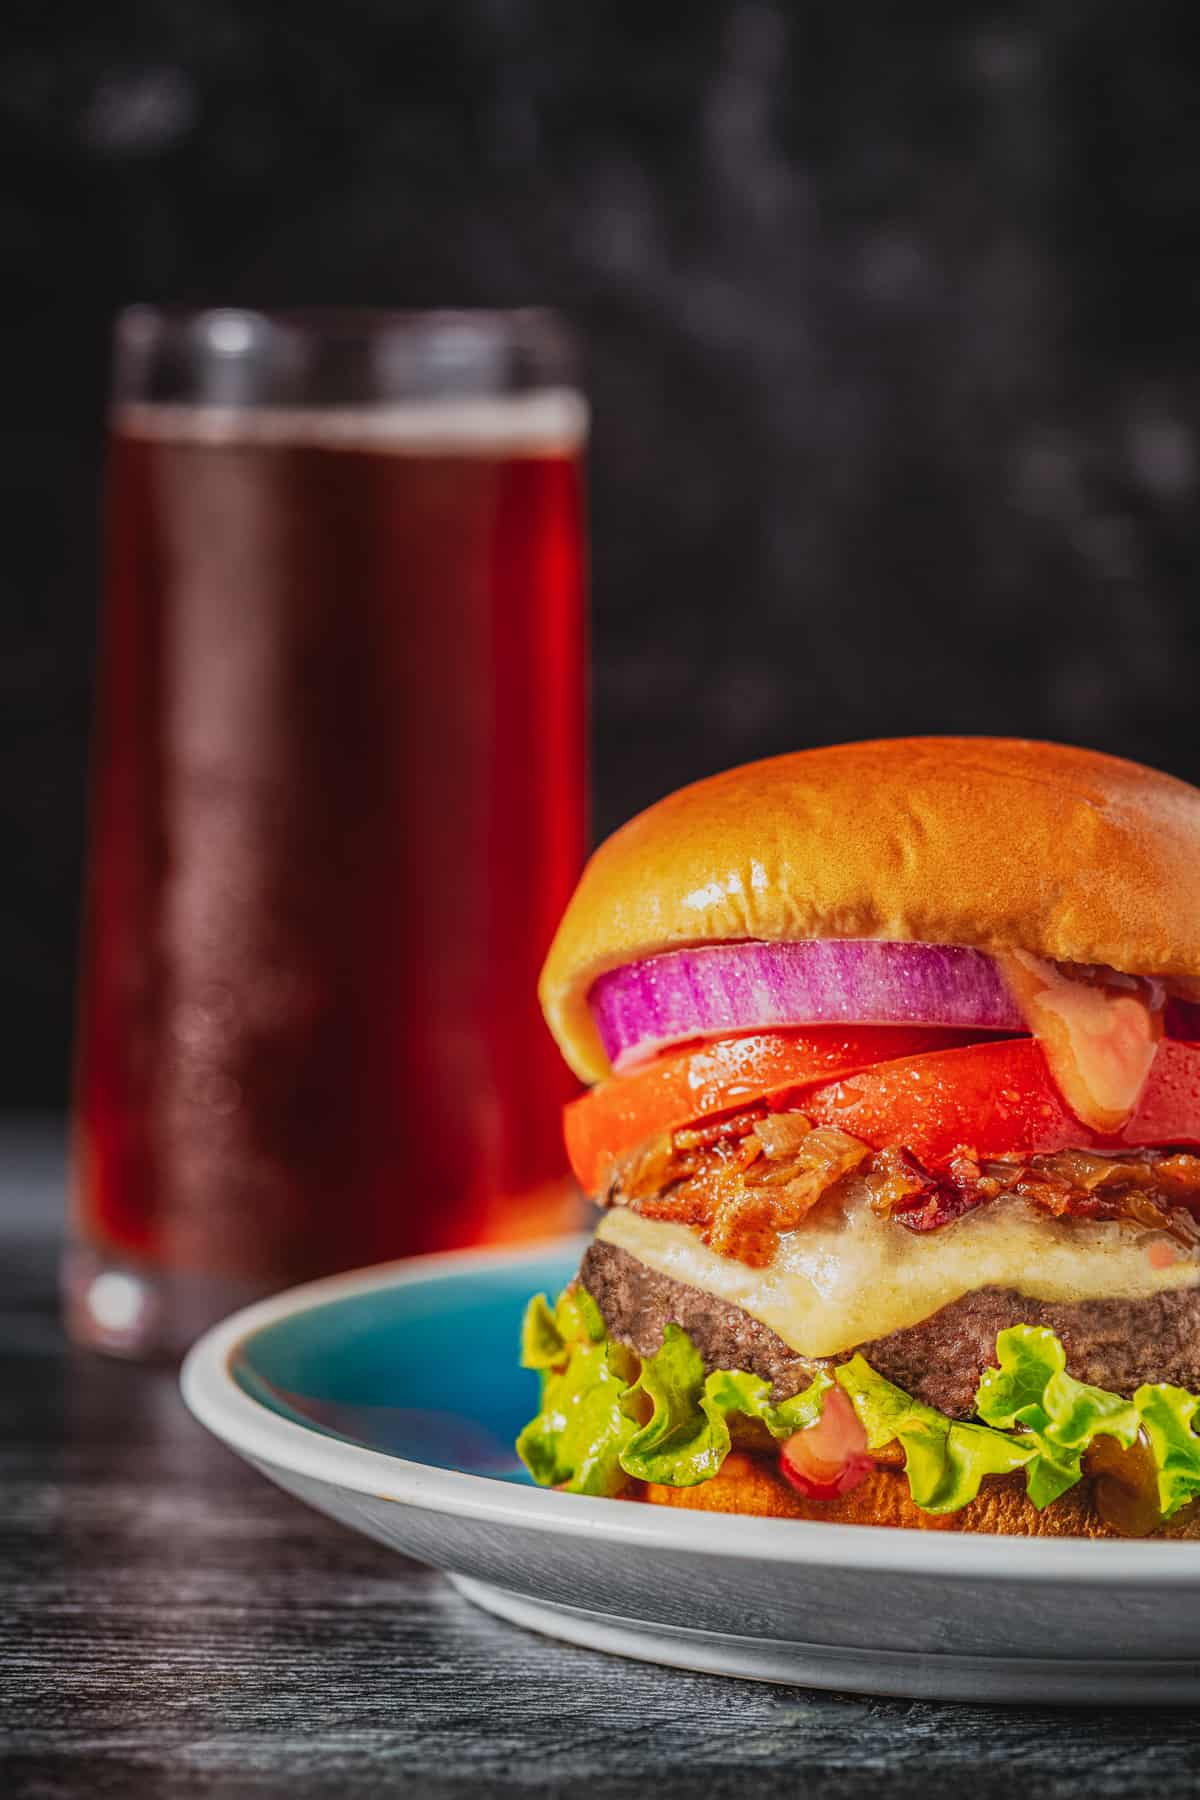 peanut butter burger on plate with bacon jam and bun